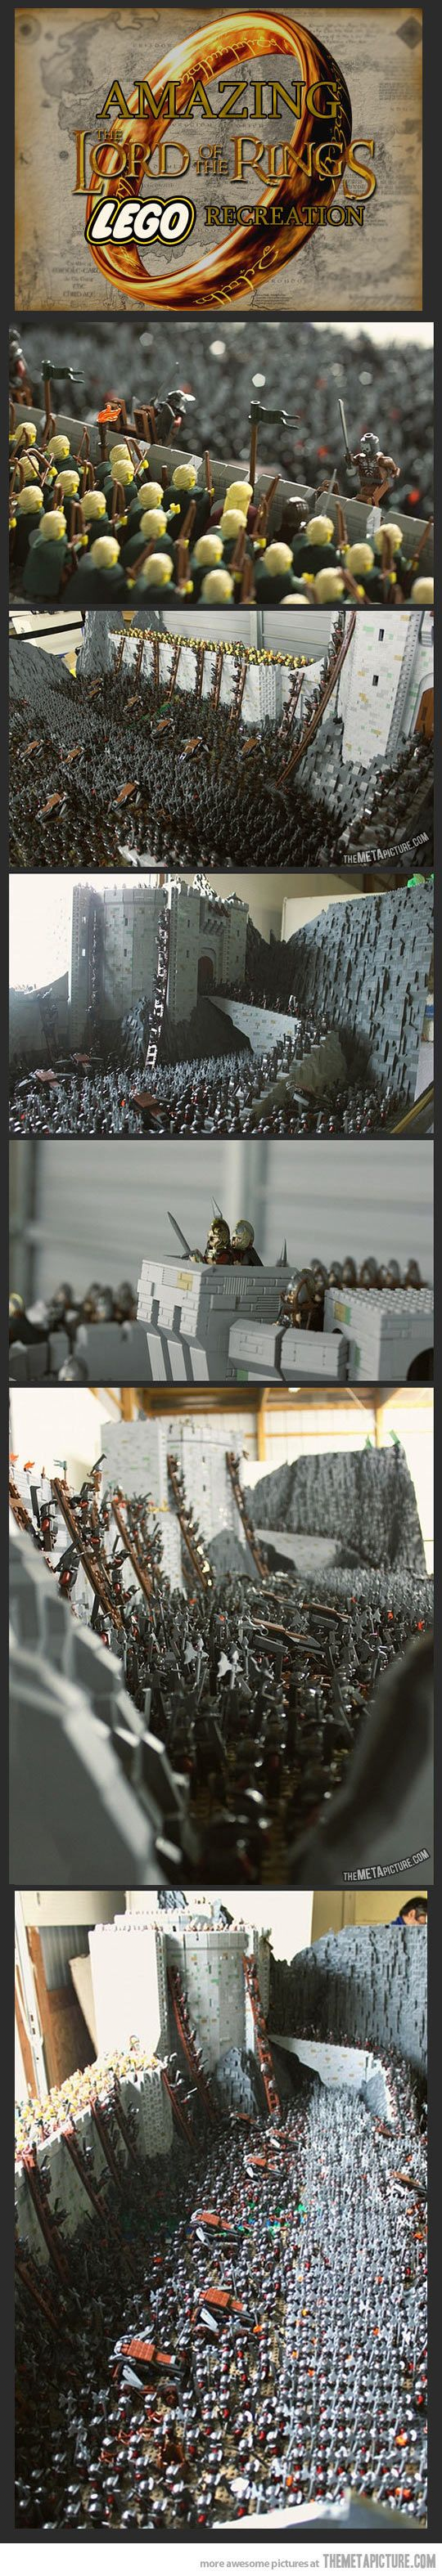 Lord Of The Rings LEGO Recreation. Whoever did this deserves a gold medal. And has too much time on their hands!